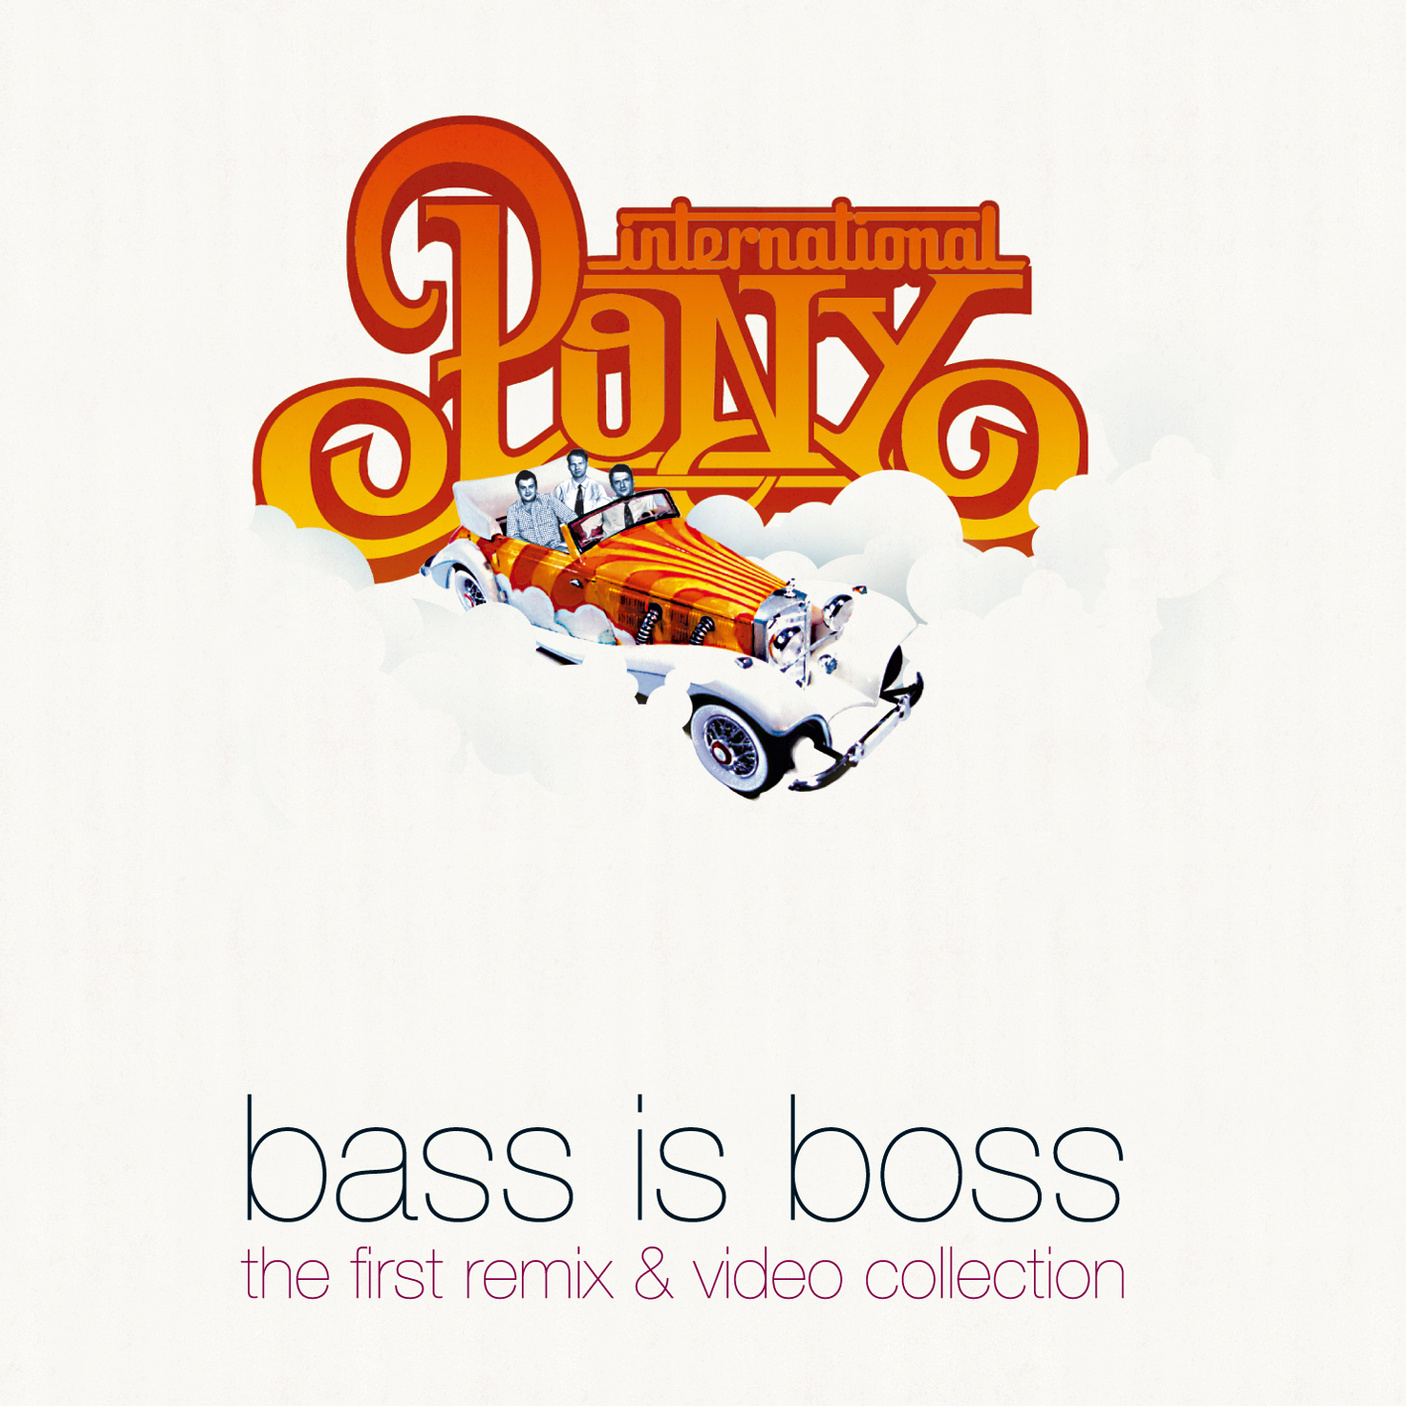 International Pony - Bass Is Boss (CD + Bonus DVD)